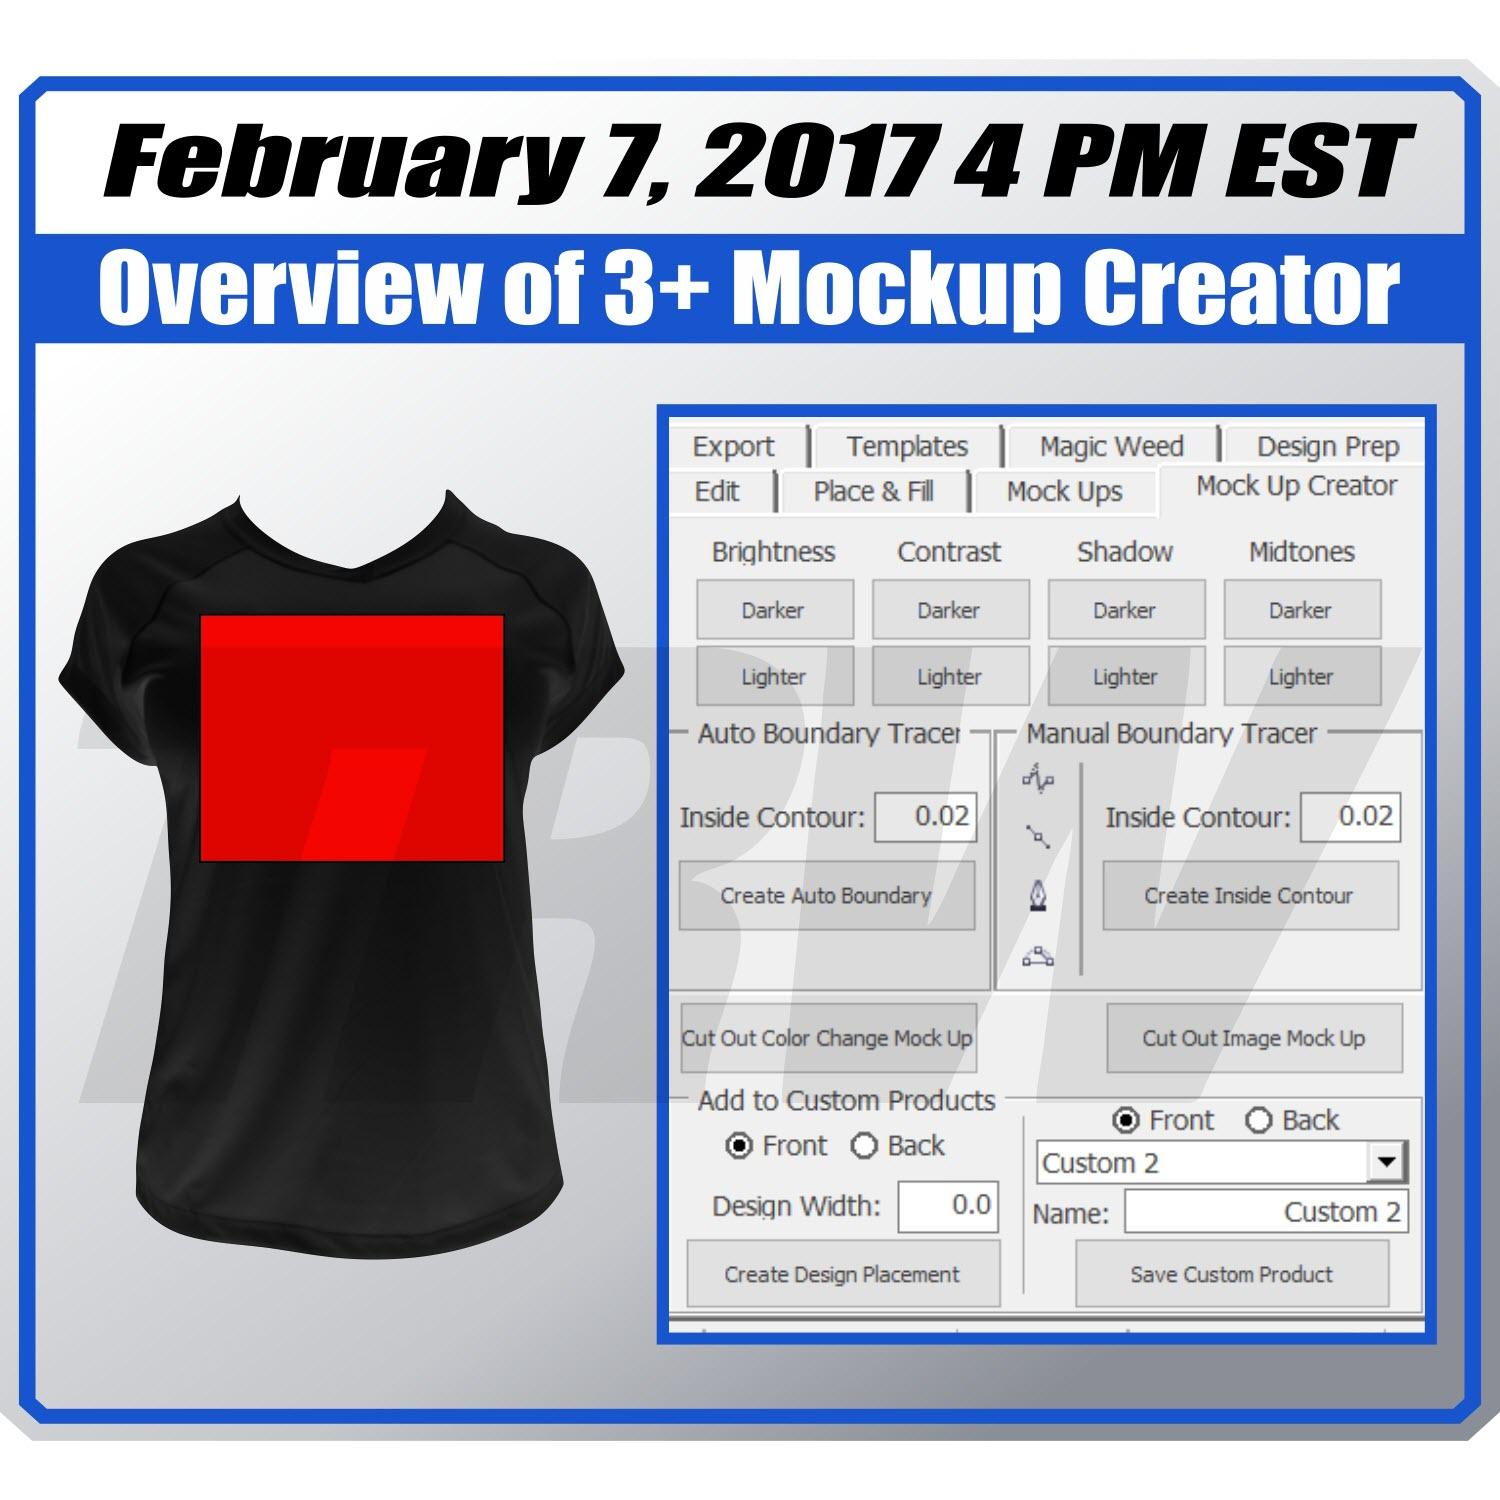 Beginner: Overview 3+ Mockup Creator